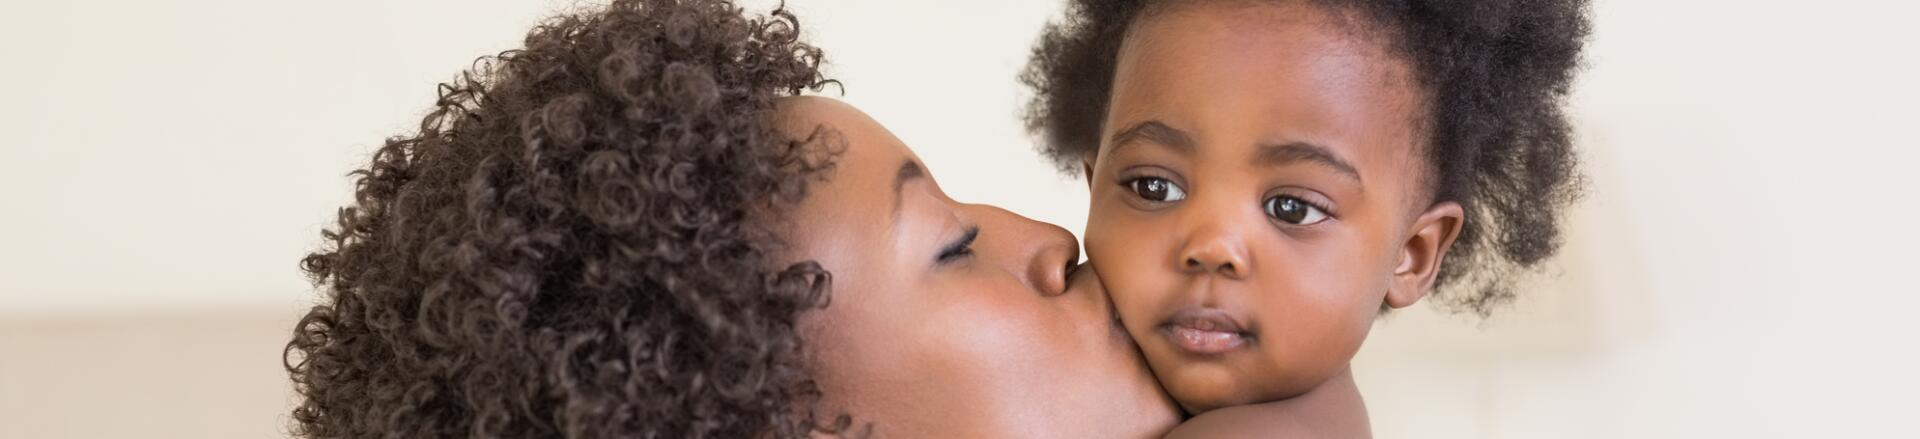 AD_ATOPIC-DERMATITIS_BLACK-MOTHER-AND-DAUGTHER_LARGE_2021